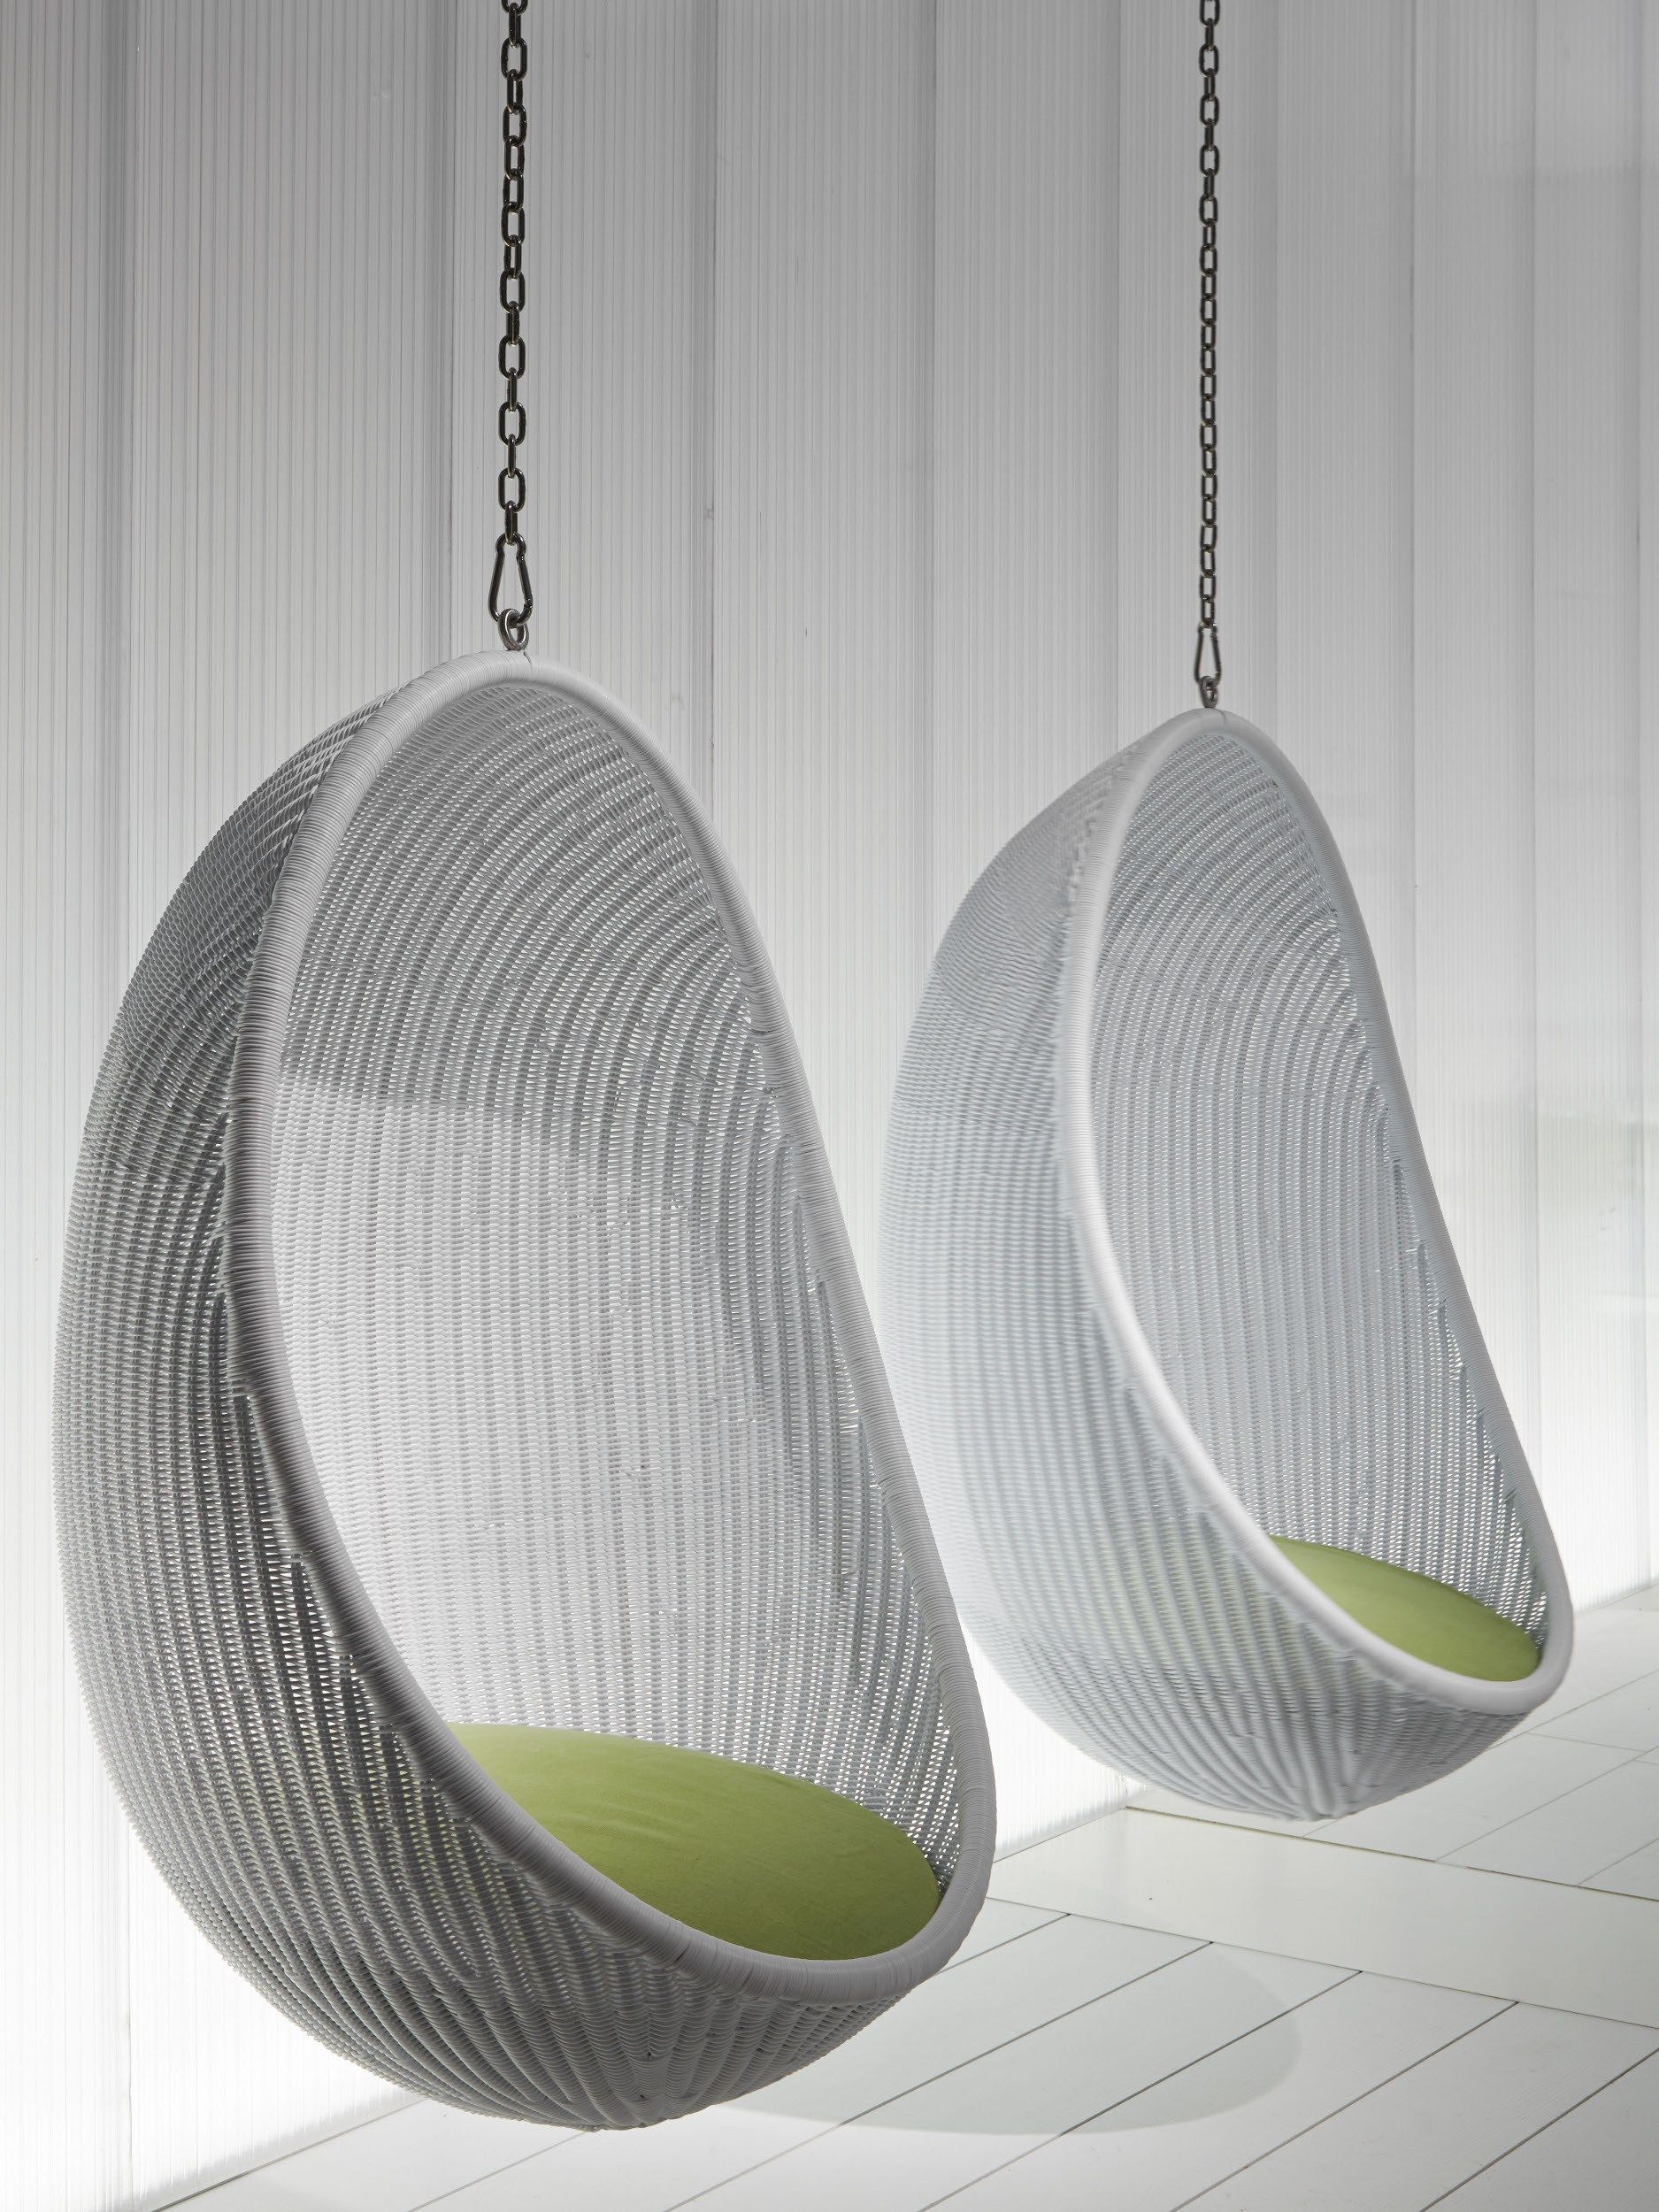 Indoor Rattan Swing Chair - Furniture nice looking white woven rattan two hanging egg chair with white wooden wall panels